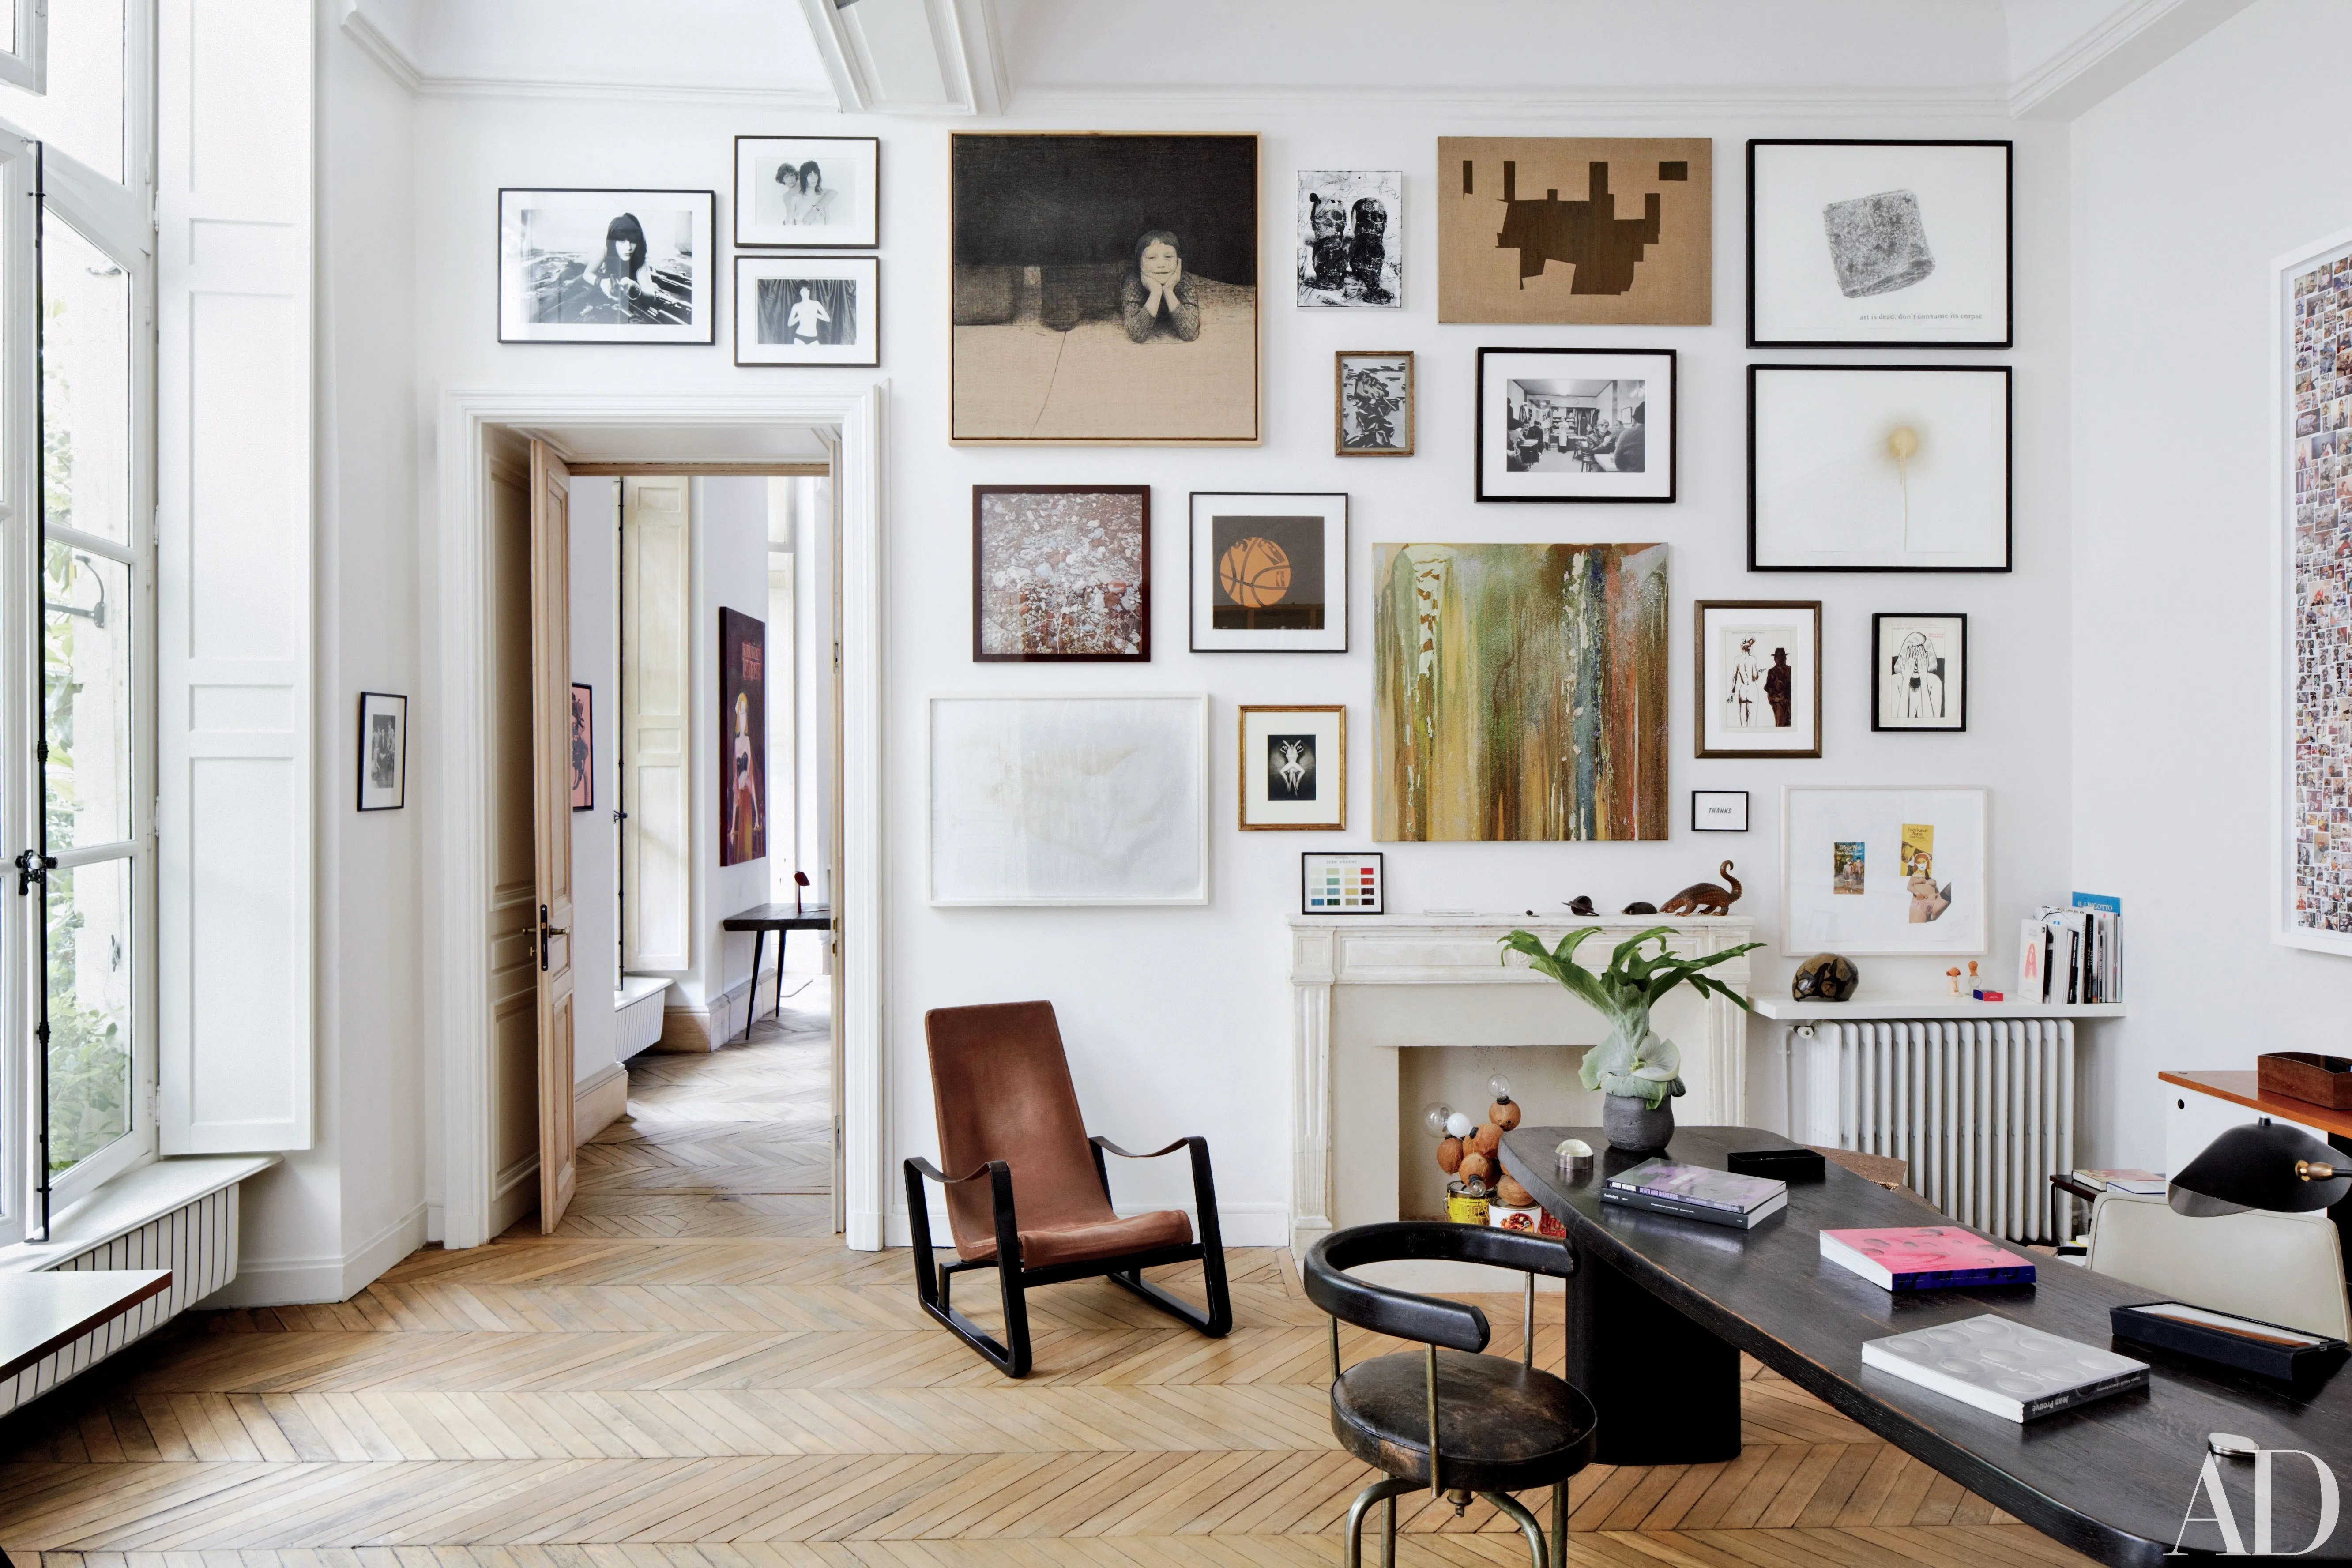 The Best Gallery Walls From Joanna Gaines, Joy Cho And